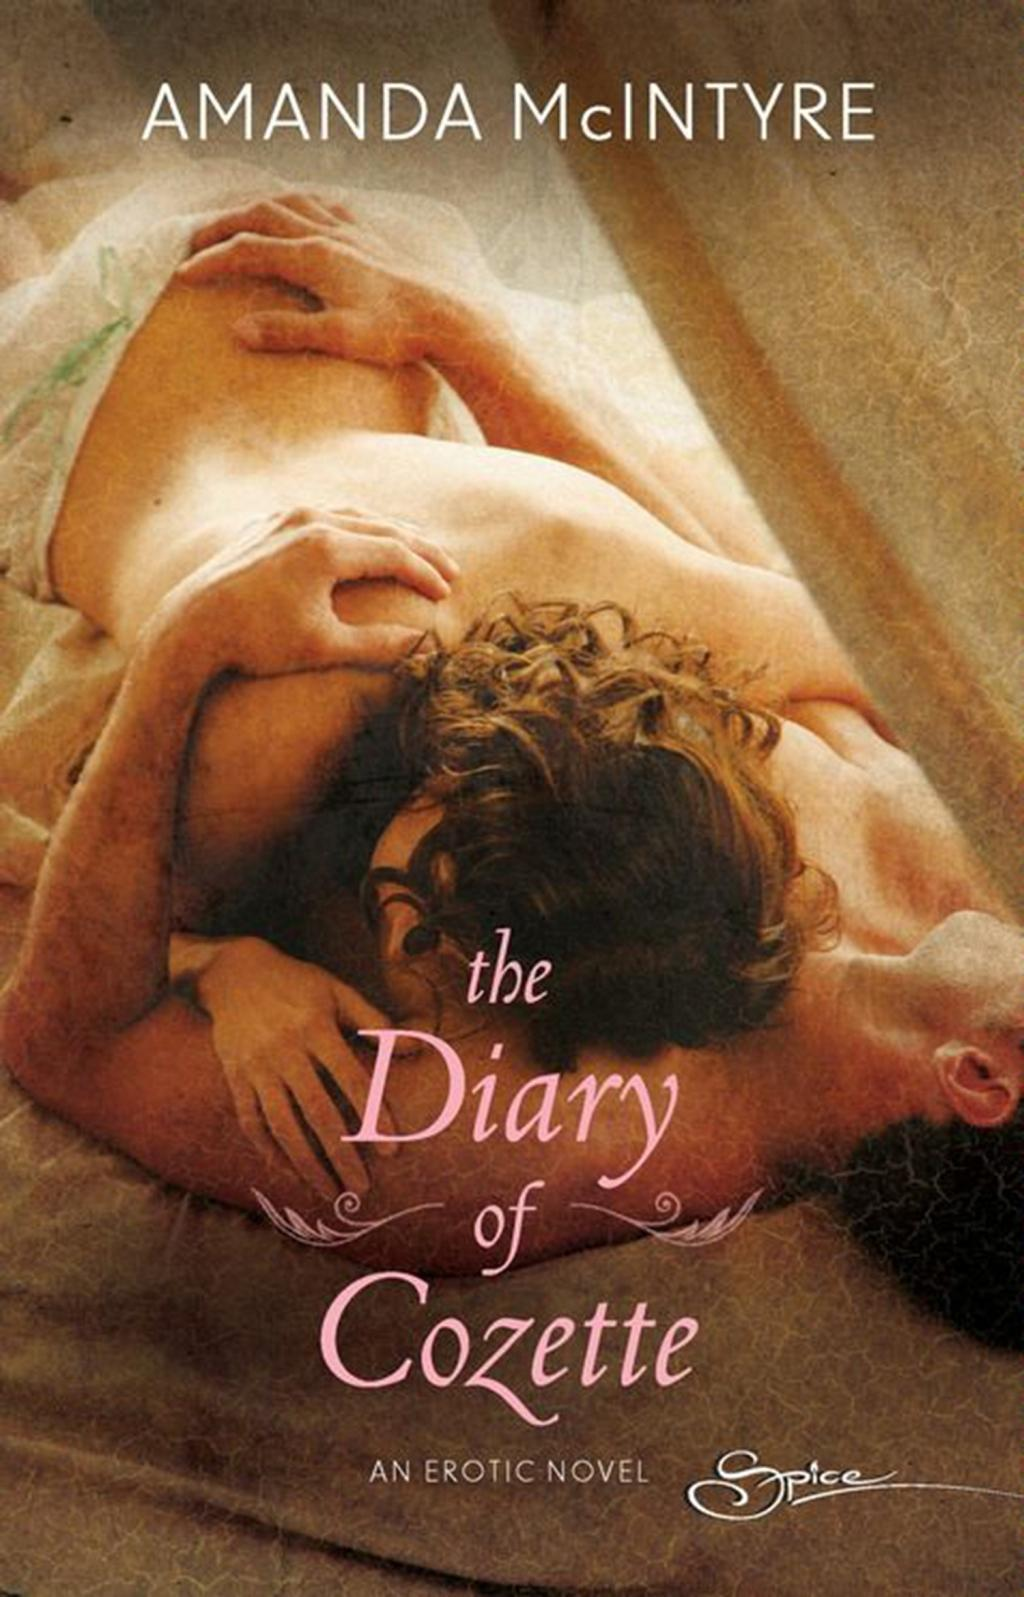 The Diary Of Cozette (Mills & Boon Spice)